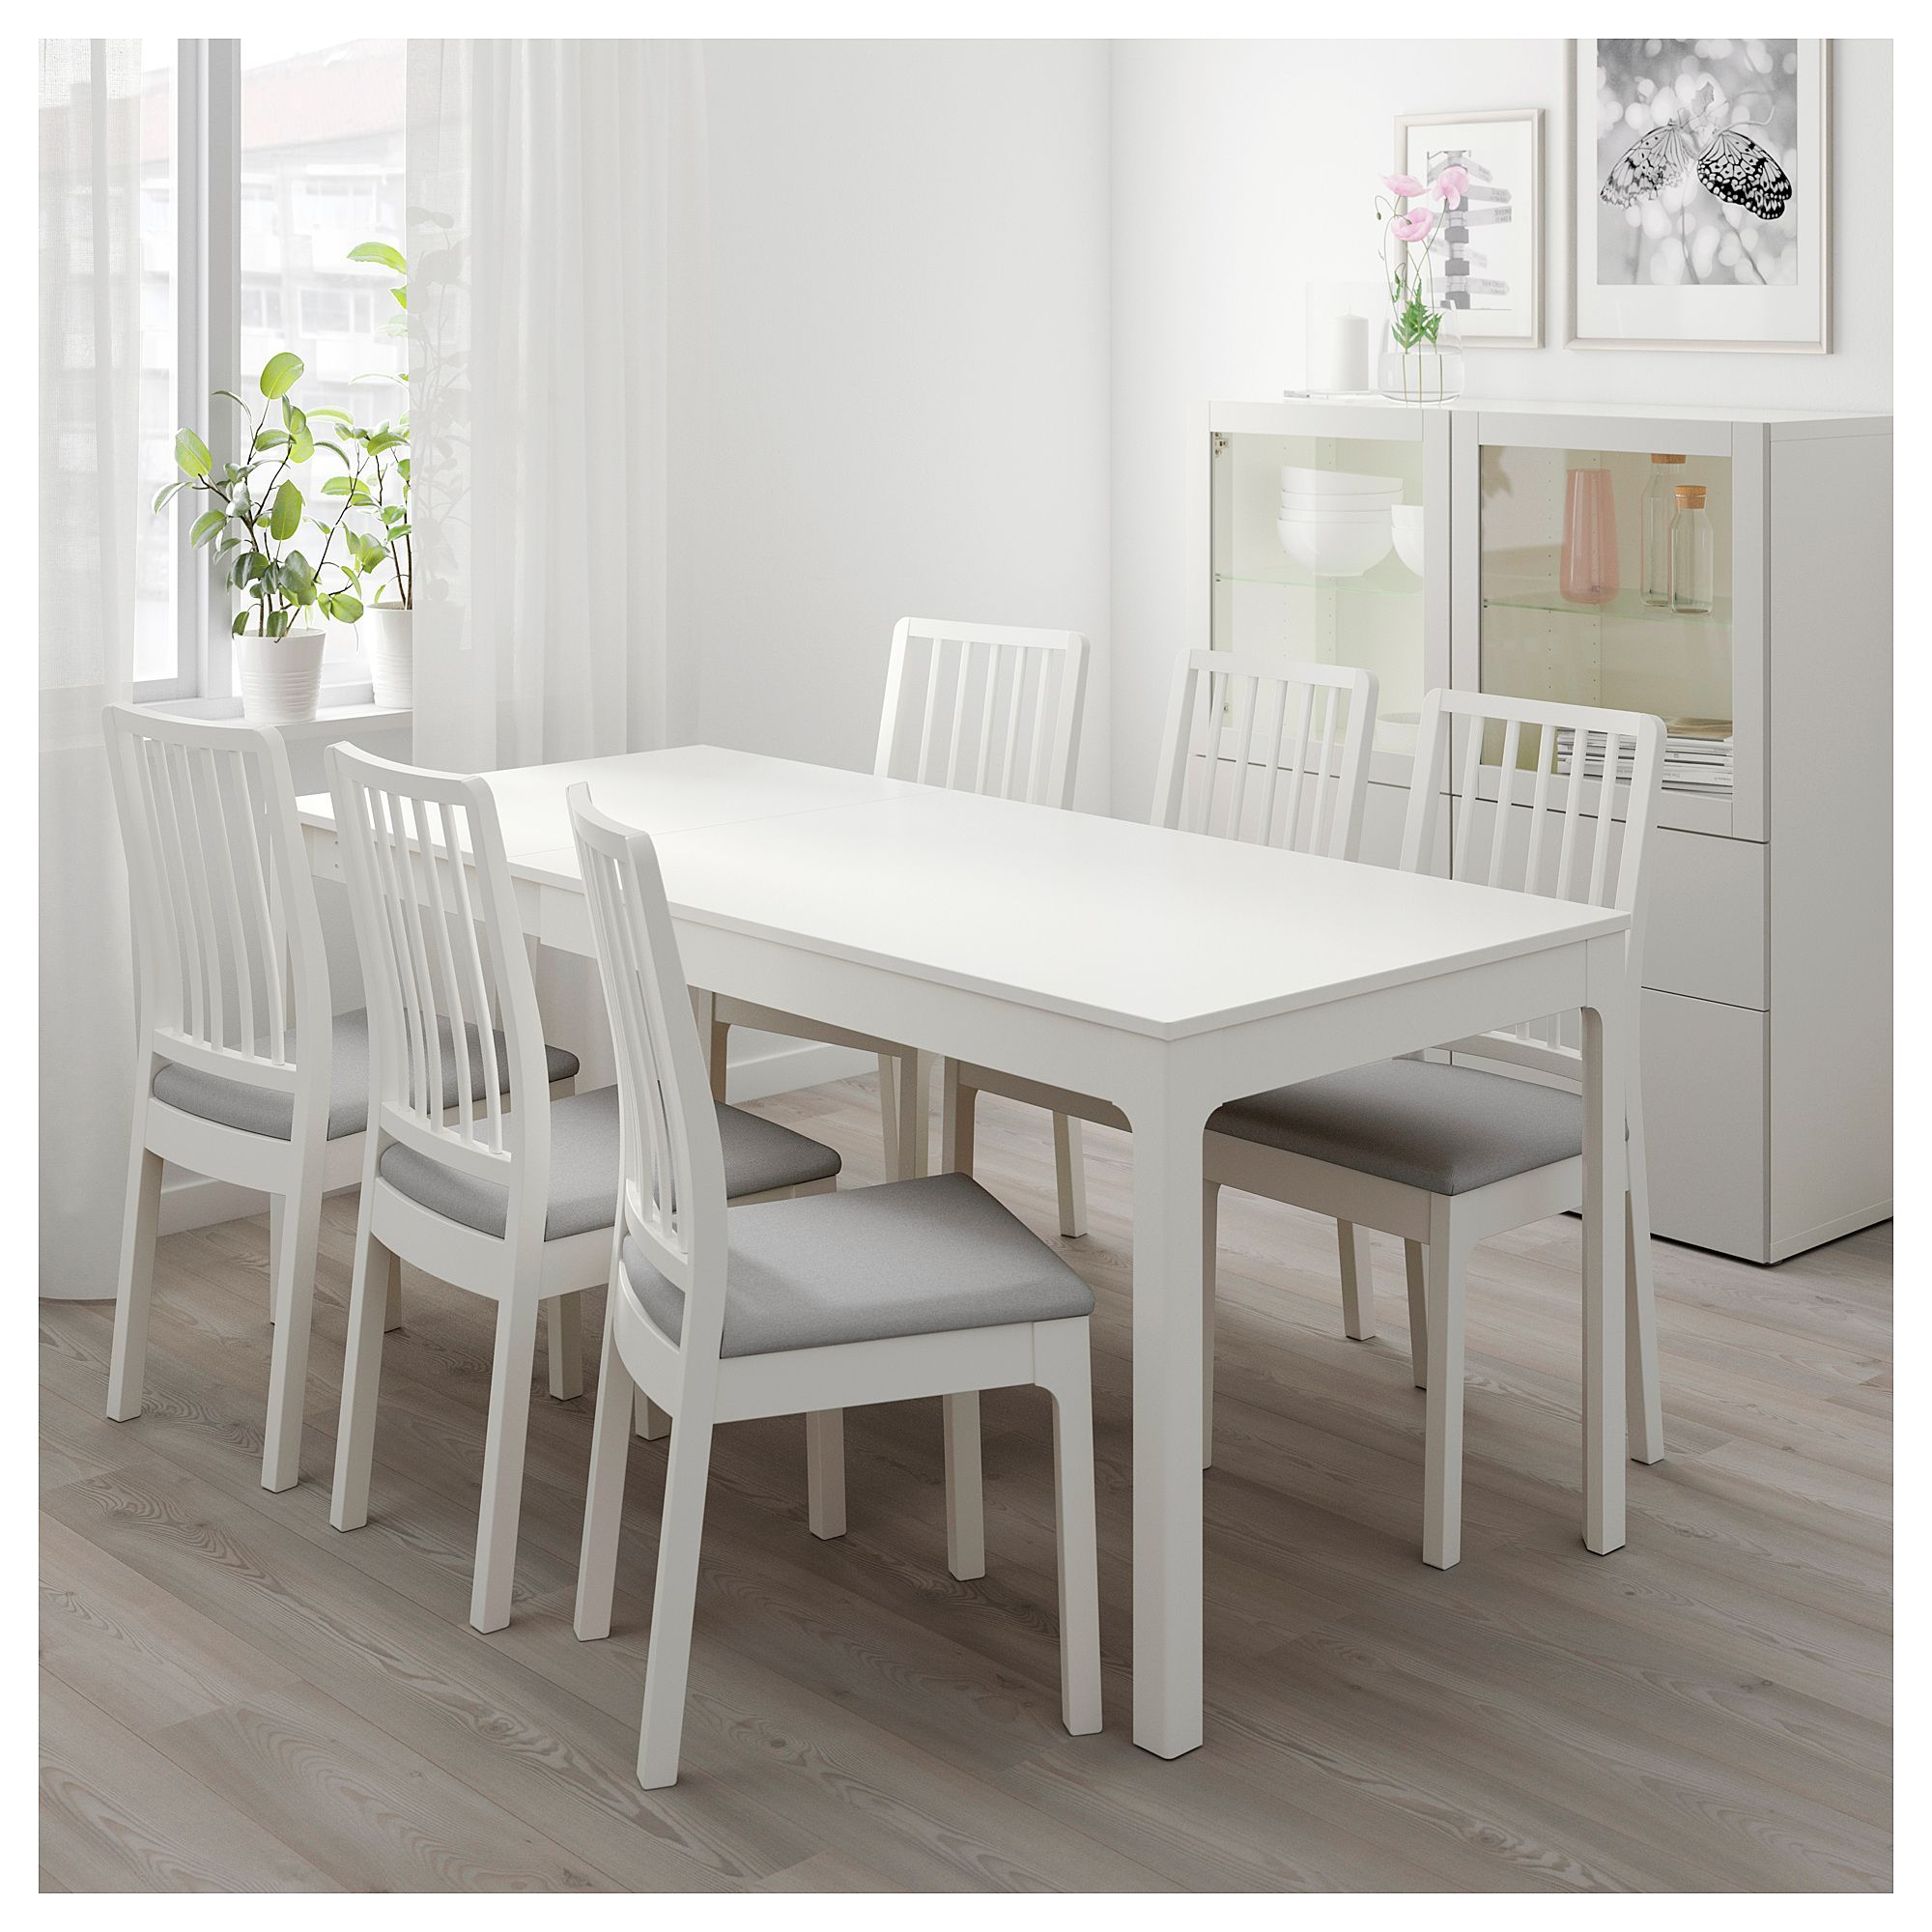 Table De Sejour Ikea Ikea Ekedalen Table And 4 Chairs White Orrsta Light Gray In